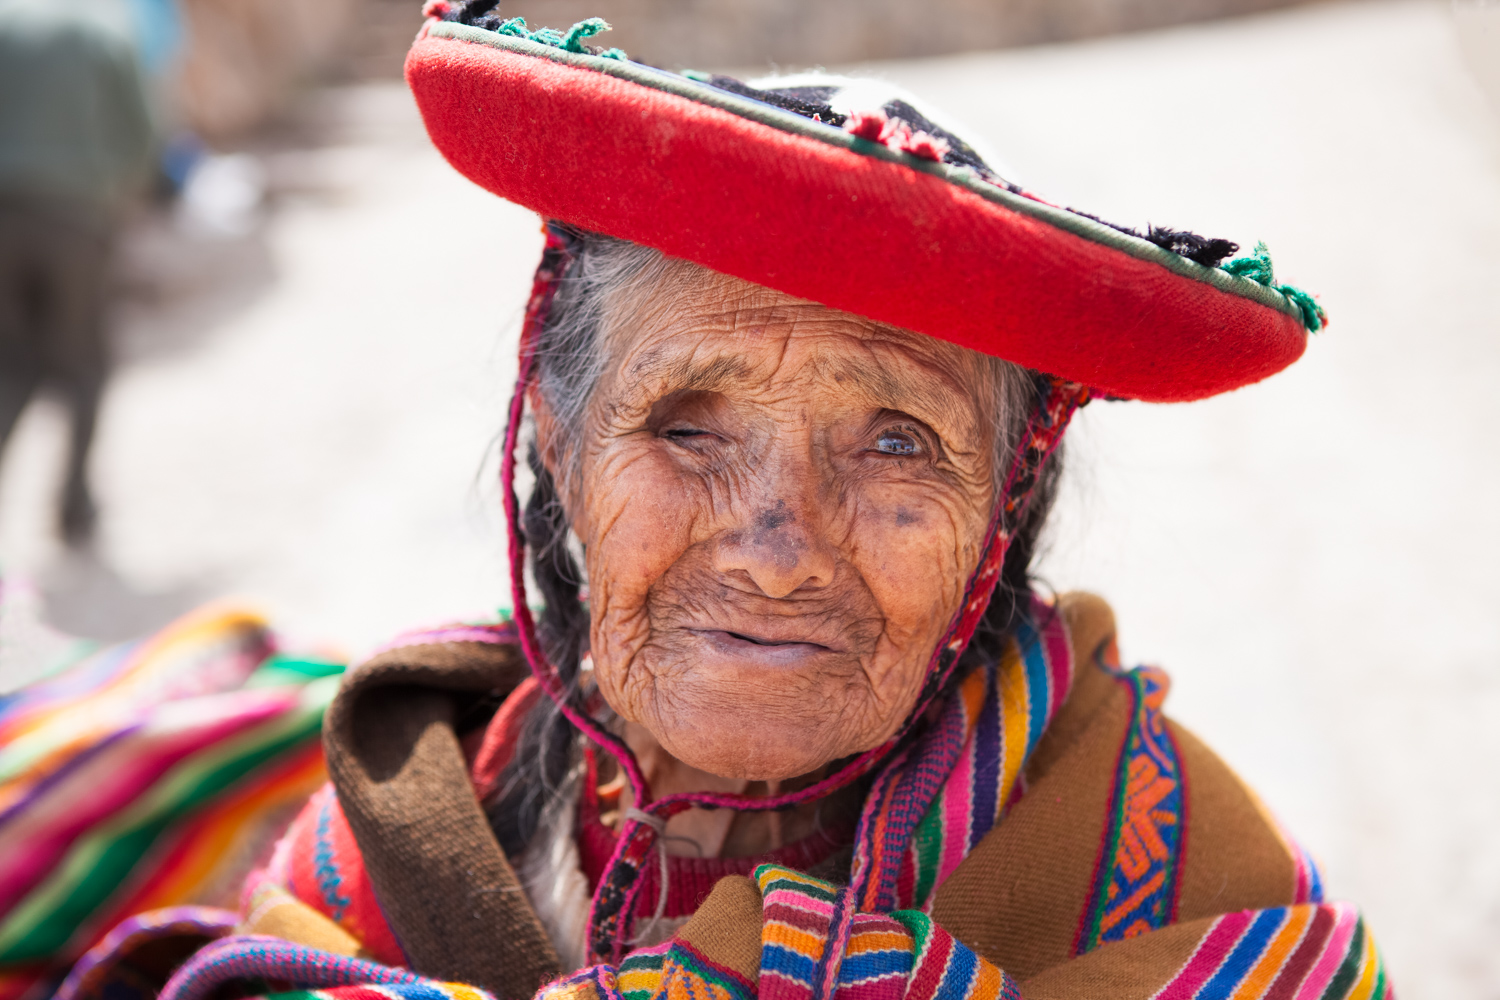 Street photography 02 - old lady in Peru in traditional attie